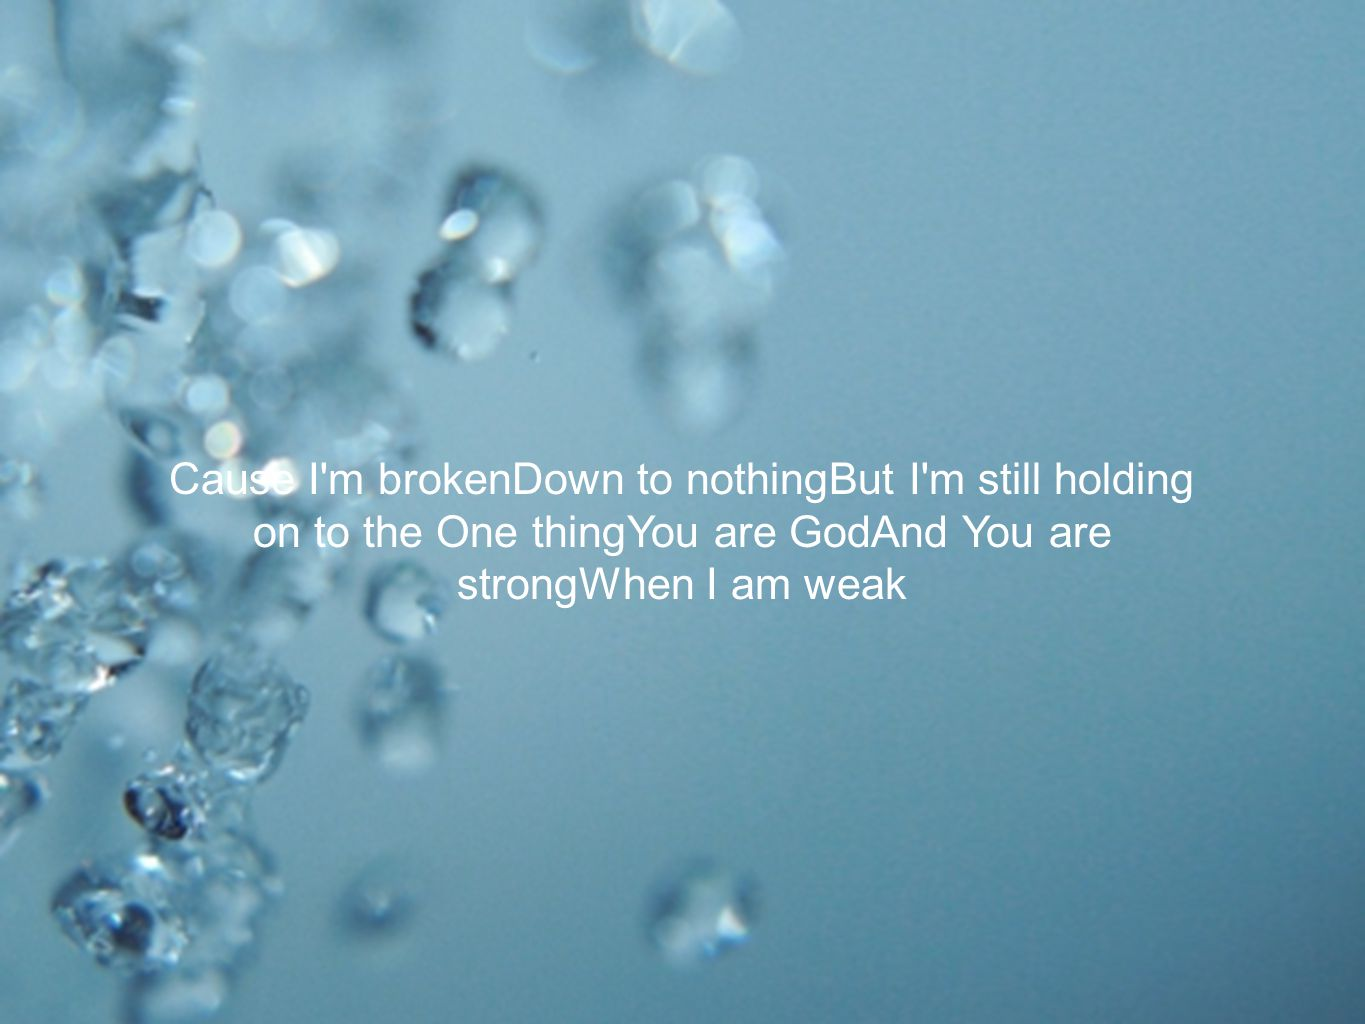 Cause I'm brokenDown to nothingBut I'm still holding on to the One thingYou are GodAnd You are strongWhen I am weak